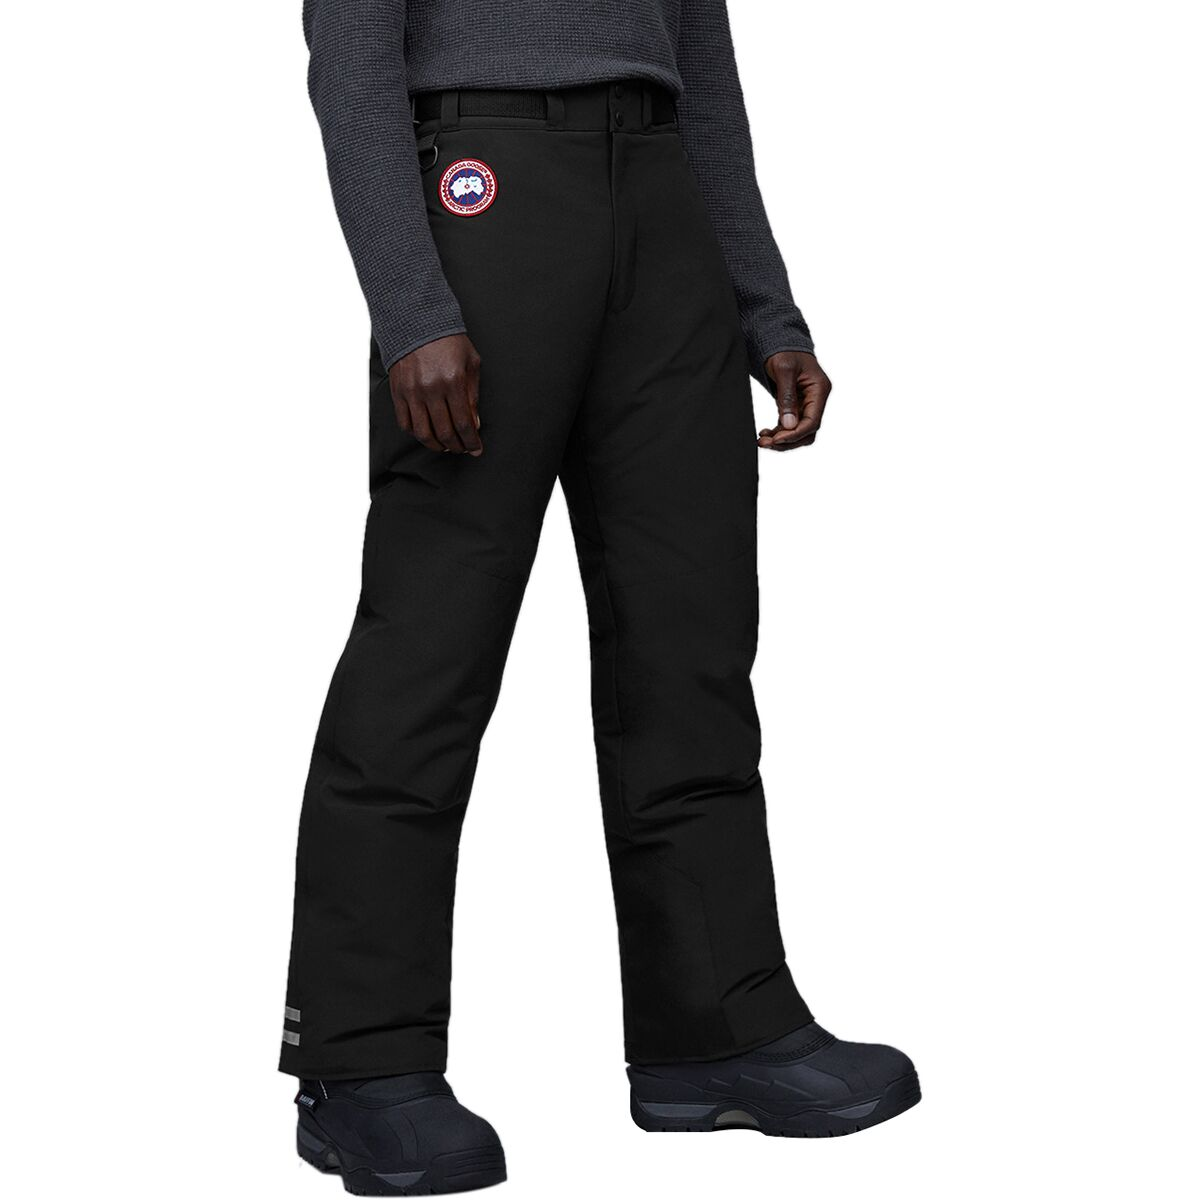 Down Insulated Pants